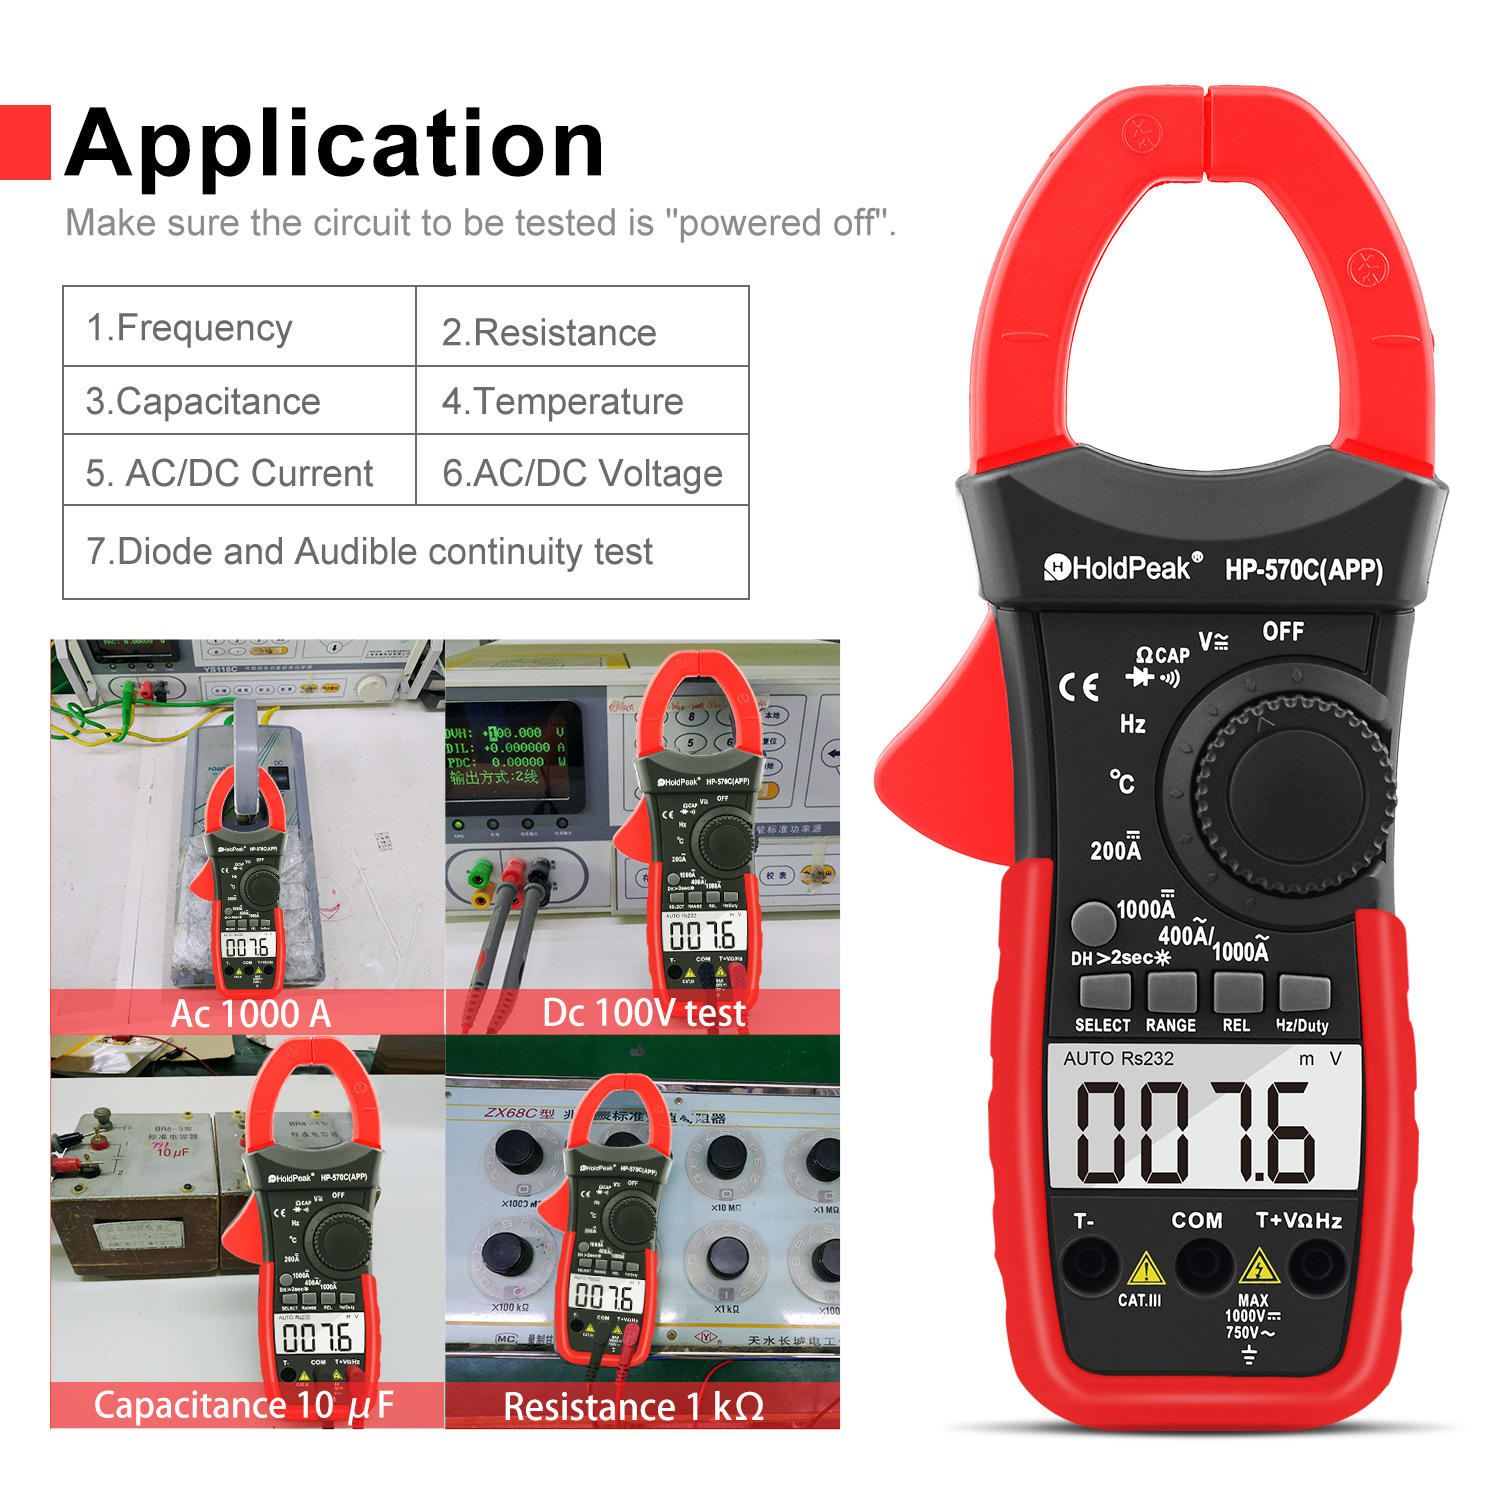 digital clamp multimeter power clamp meter digital clamp meter HP-570C-APP